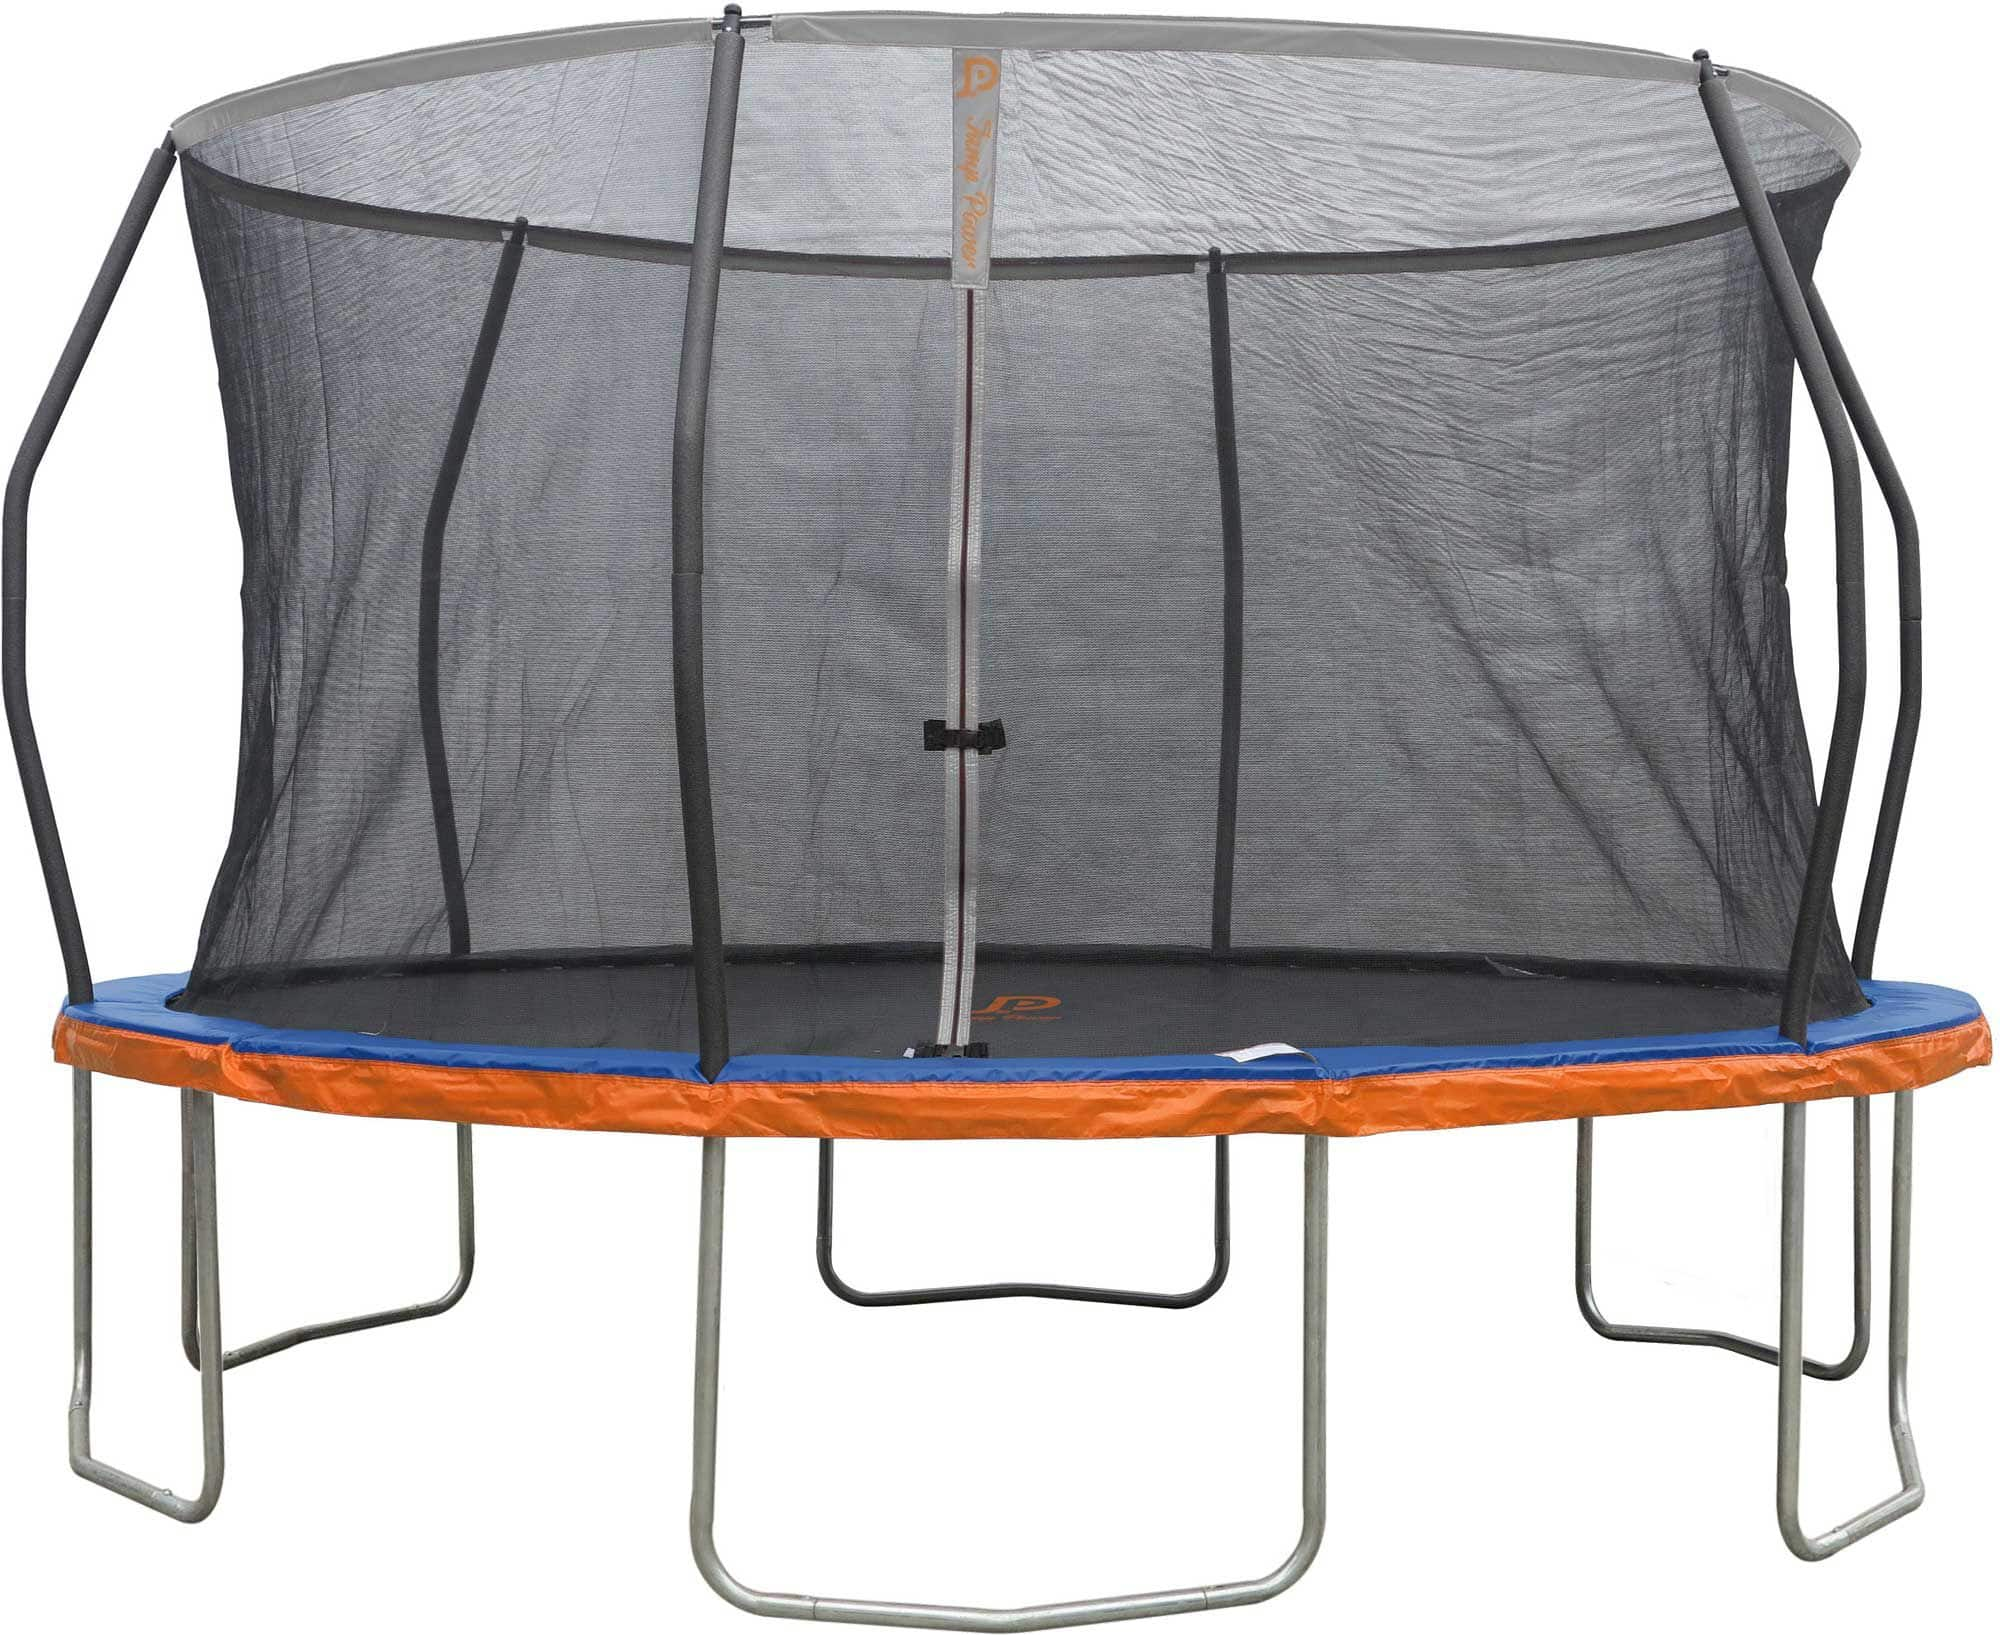 Jump Power 14' Round Trampoline with Safety Enclosure Net for $179.98 $1789.98